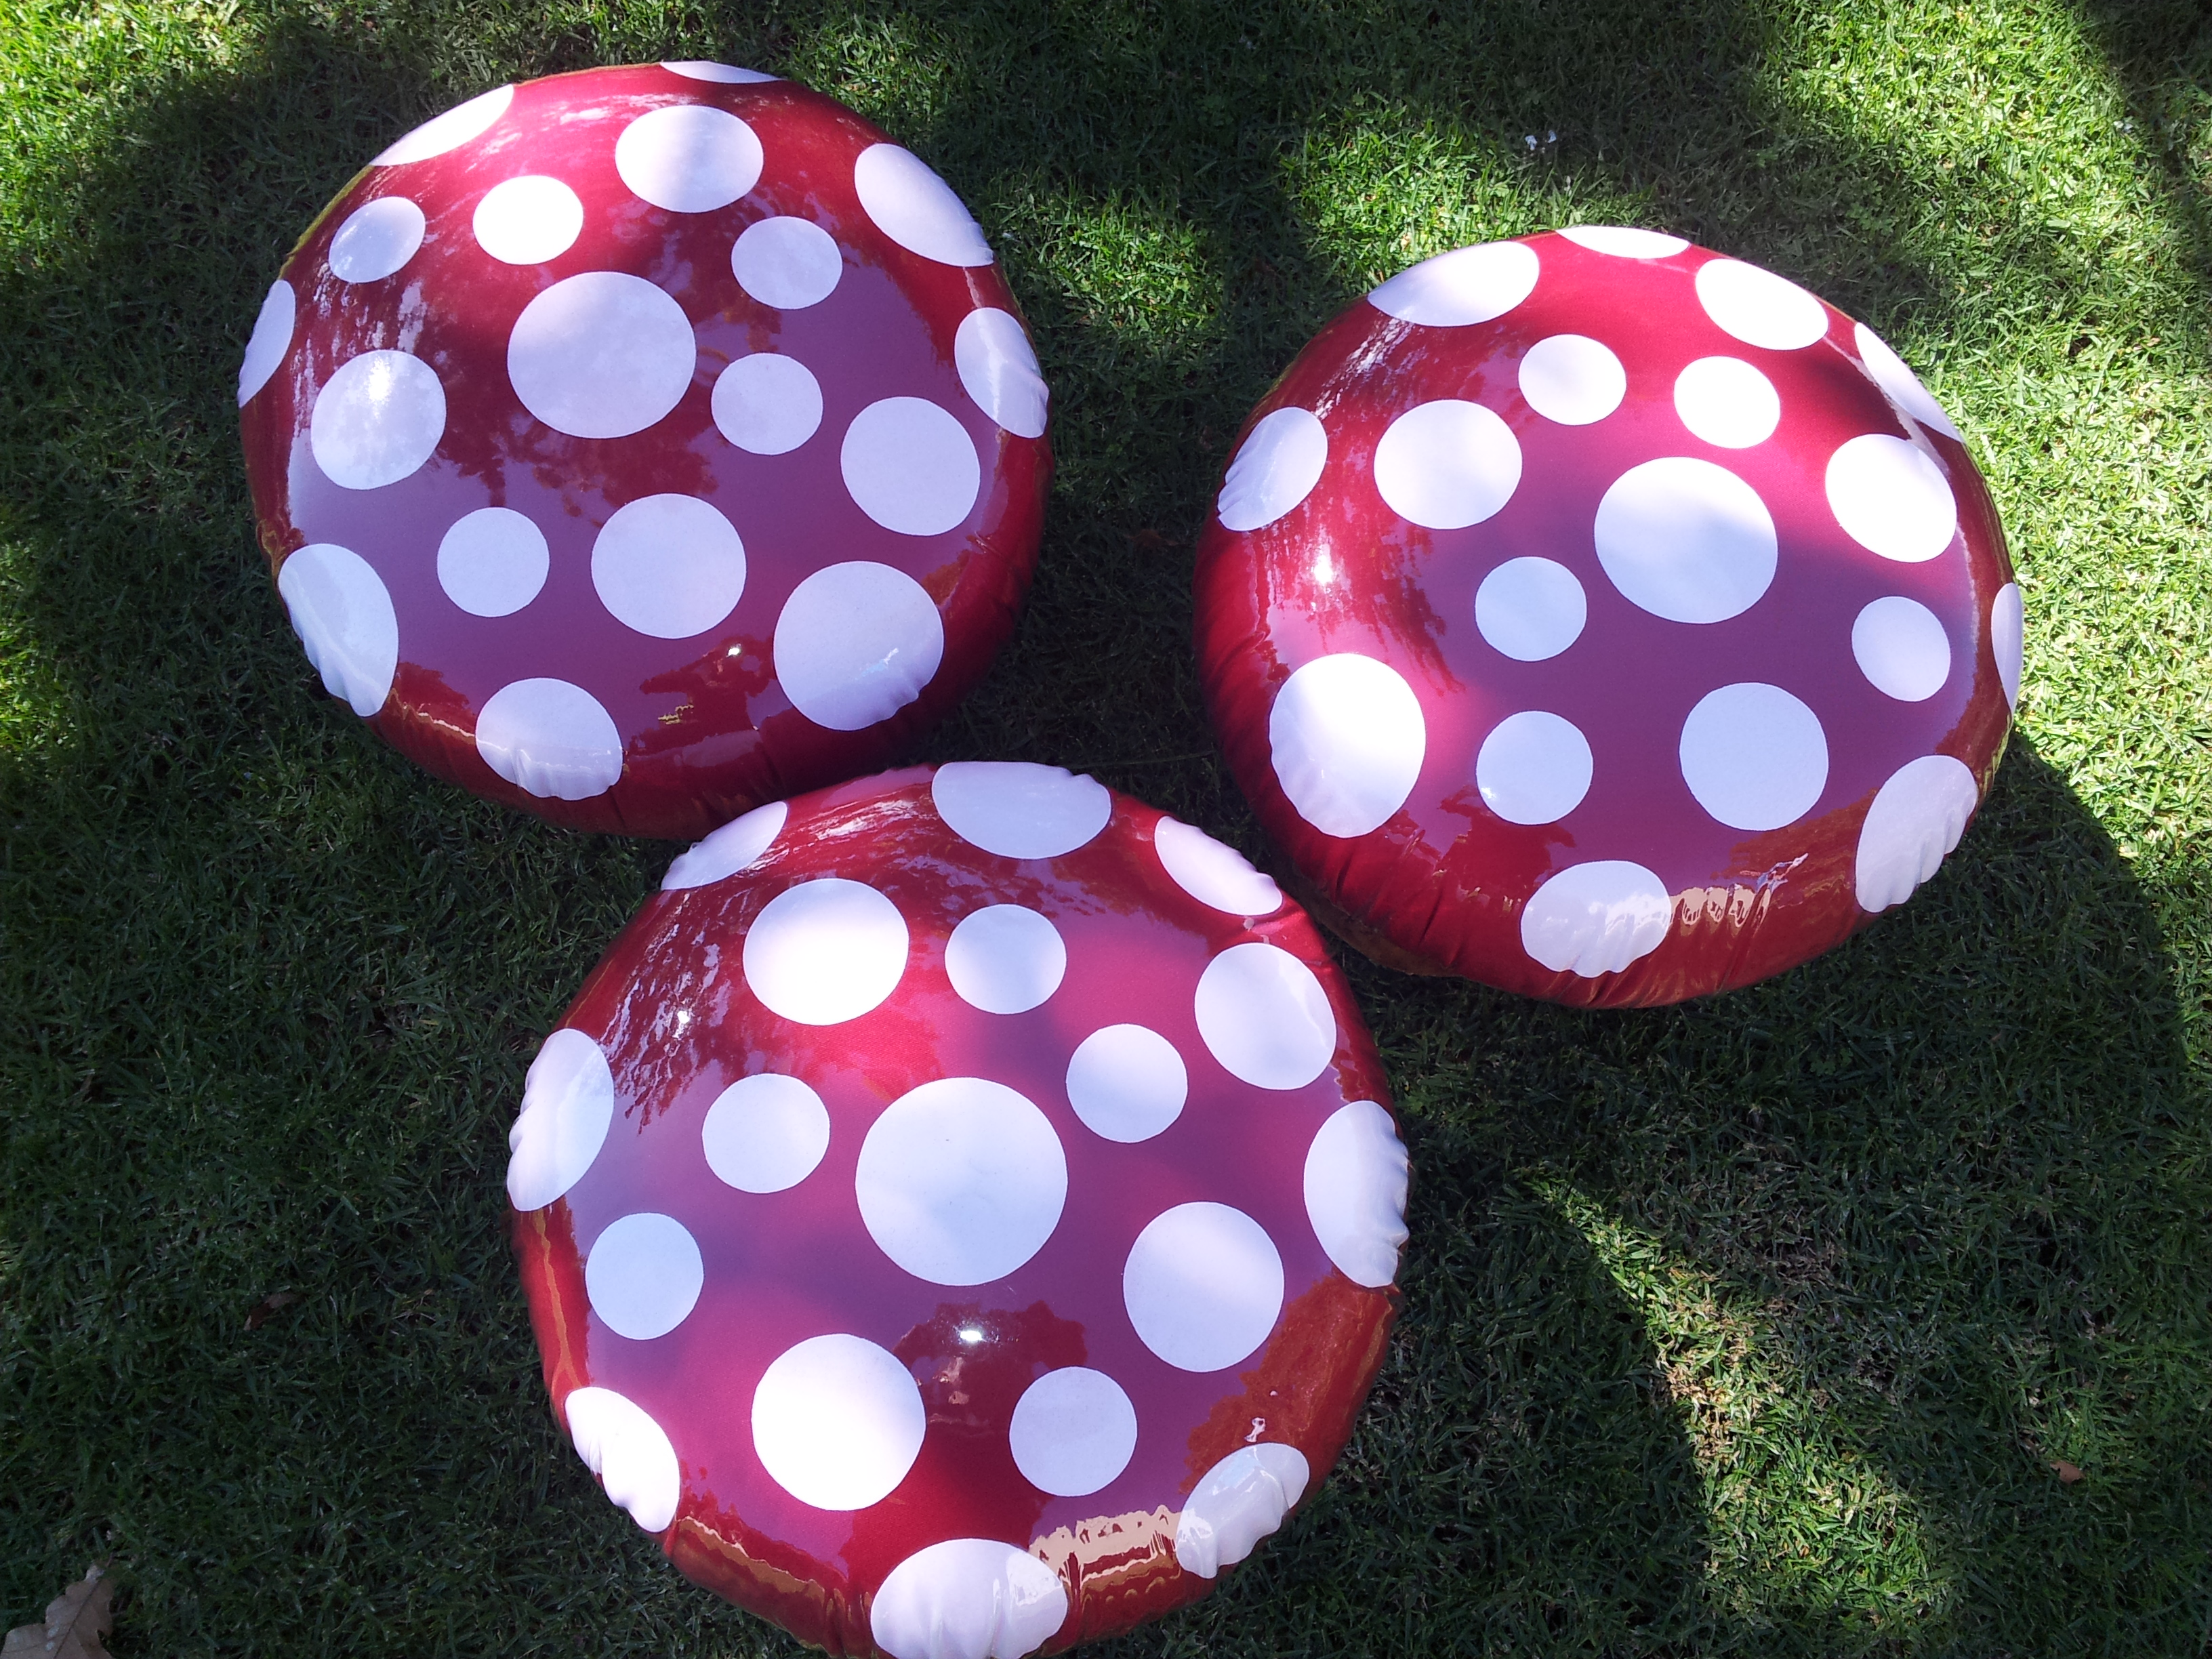 Toadstools tor Rent R30.00 each